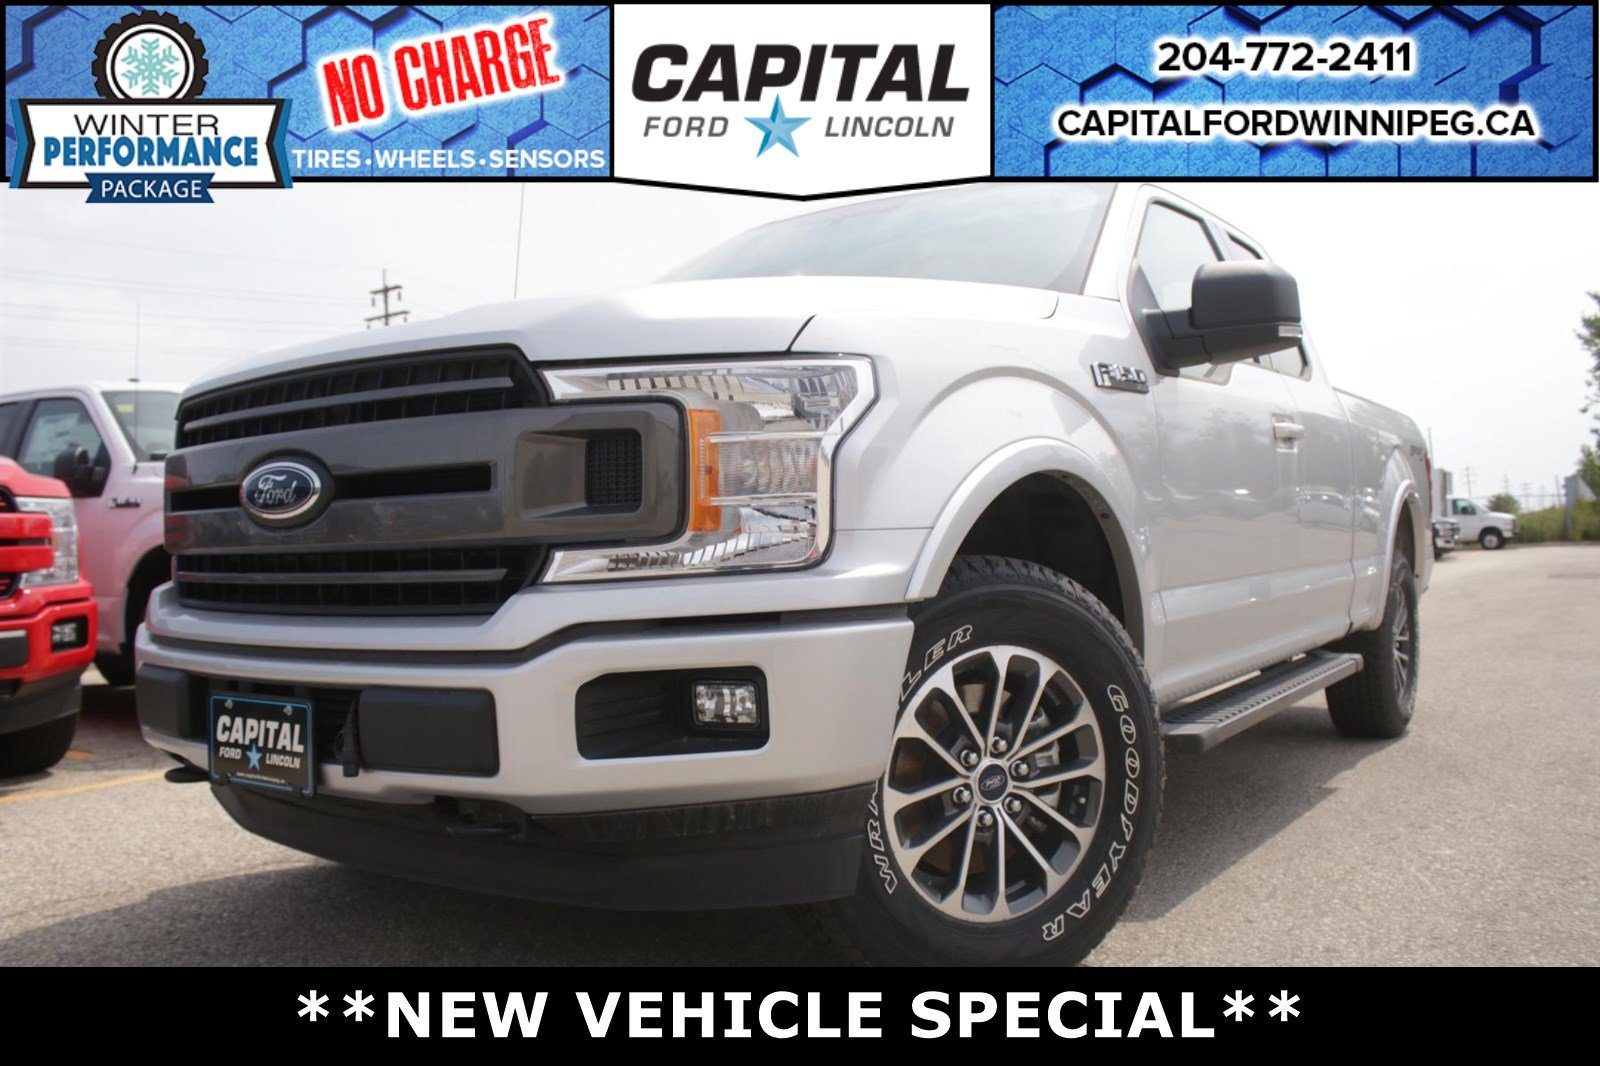 New 2018 ford f 150 xlt supercab year end sale 3 5l ecoboost